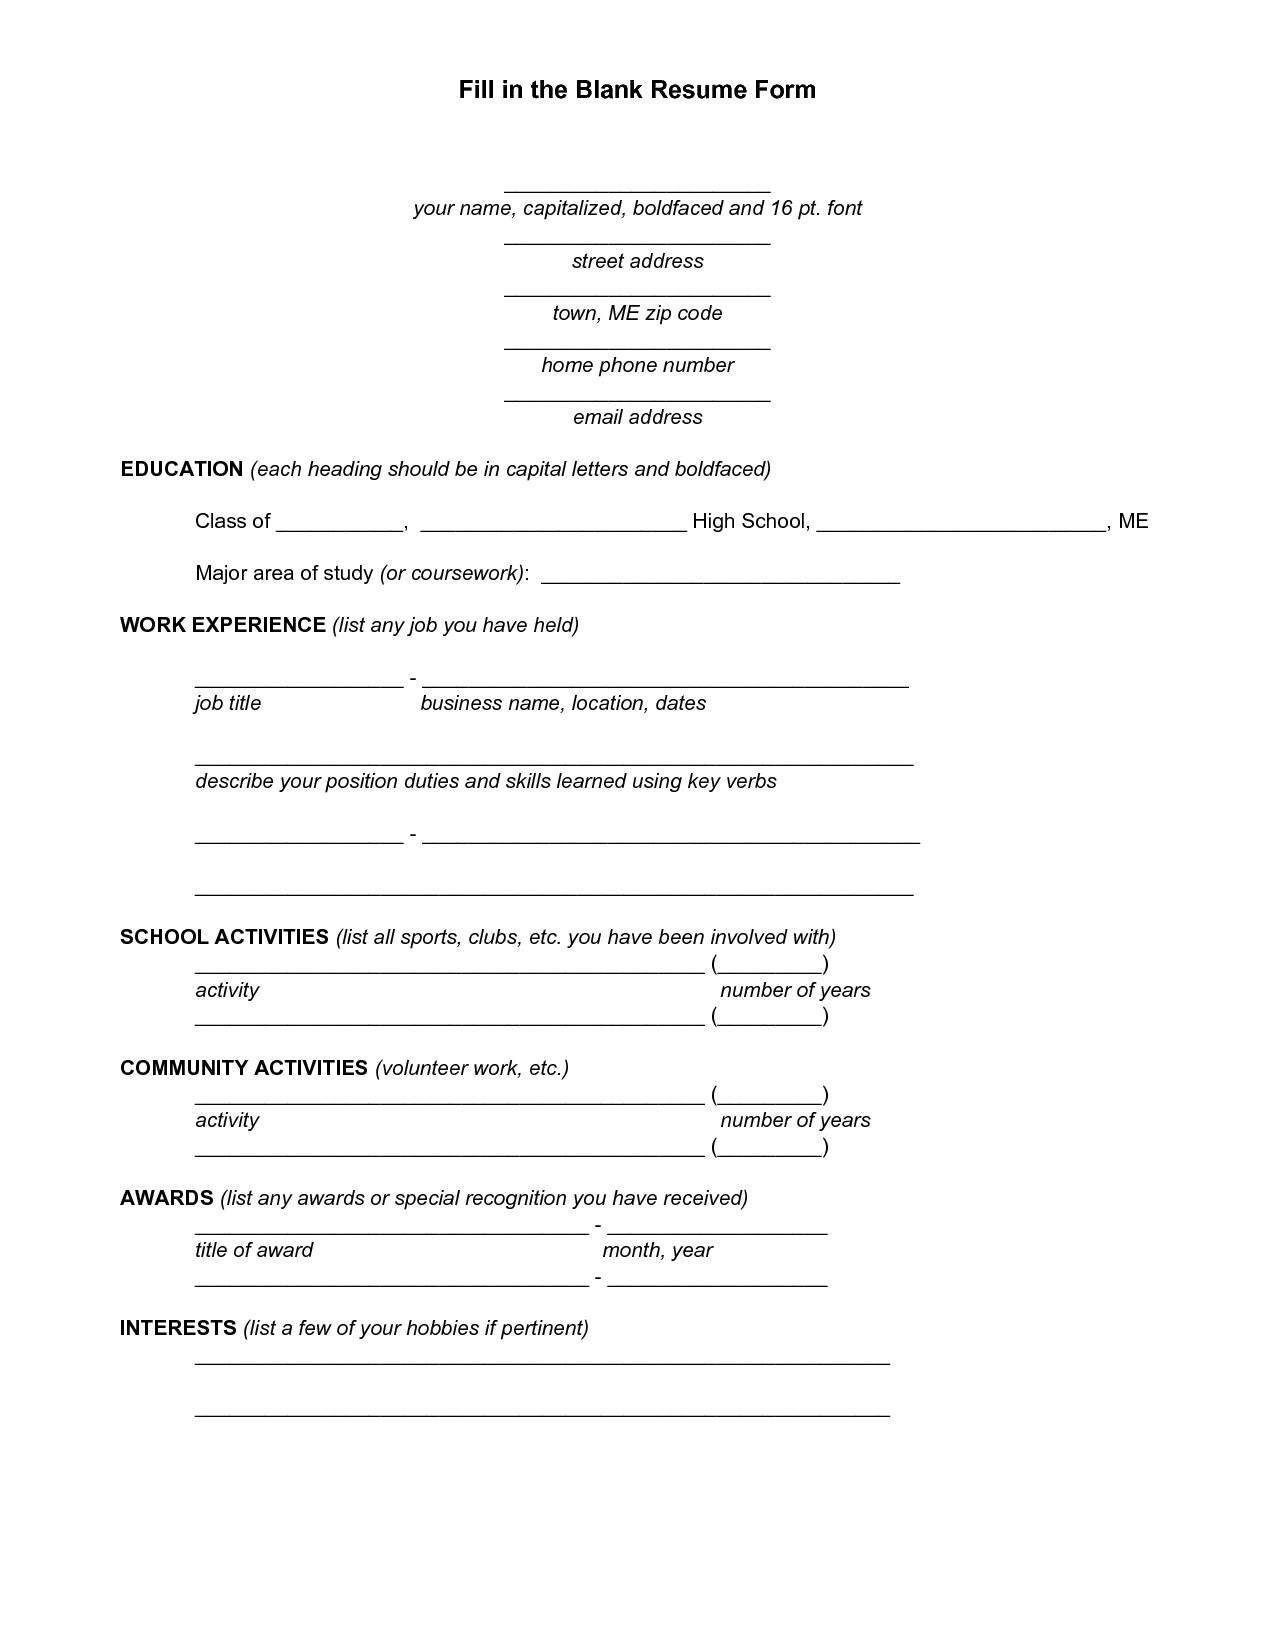 Blank Simple Resume Template Blank Resume Template for High School Students